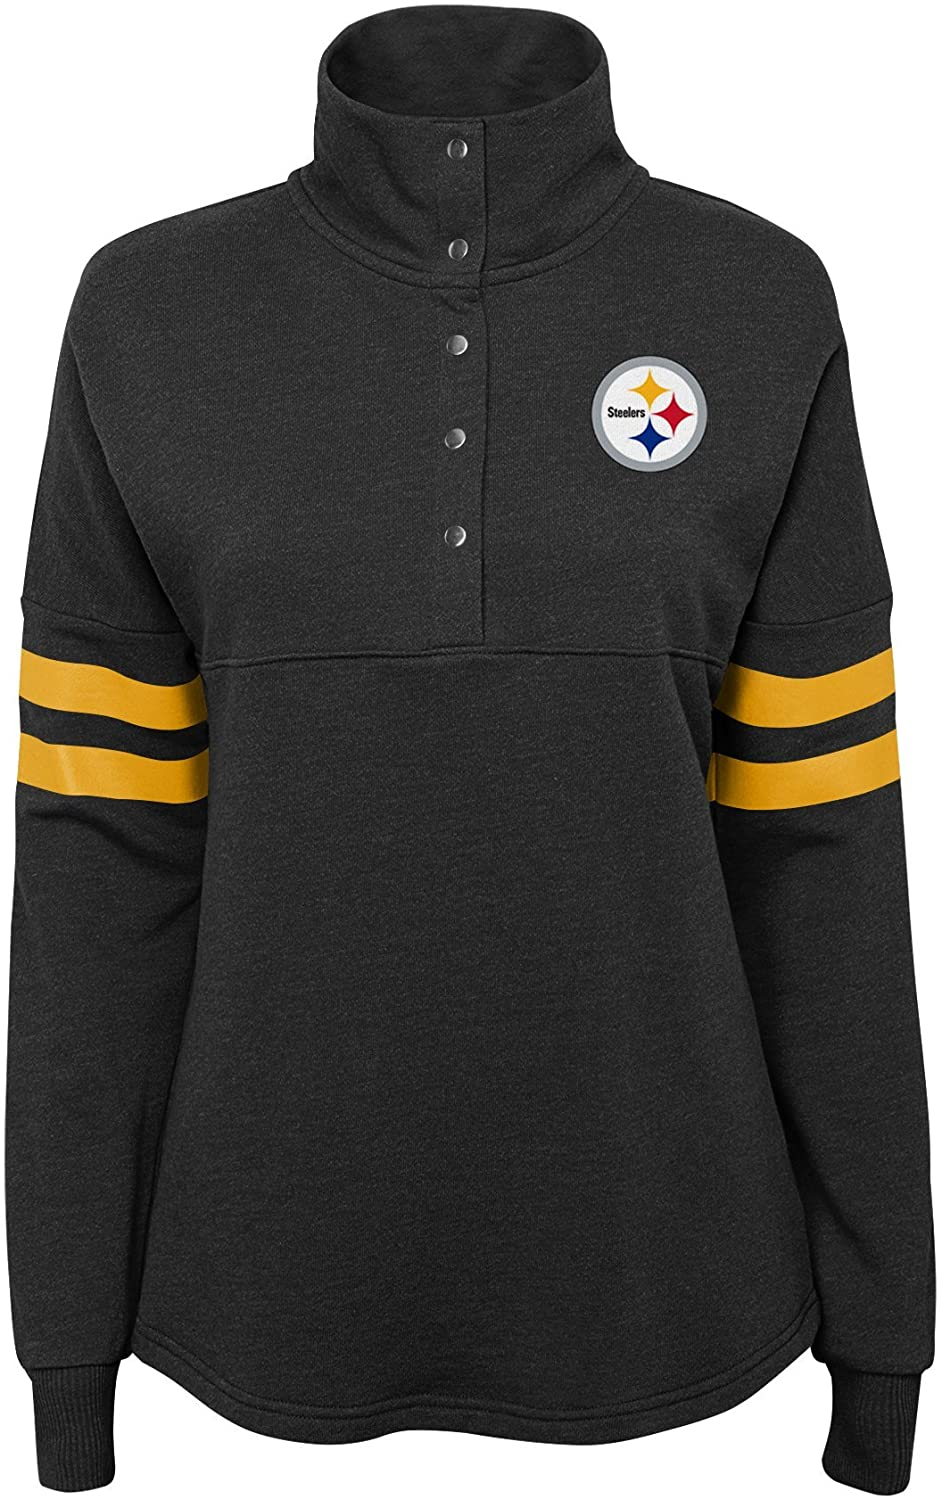 Outerstuff NFL Womens Juniors Classic Throw Varsity 1/4 Snap Pullover Top